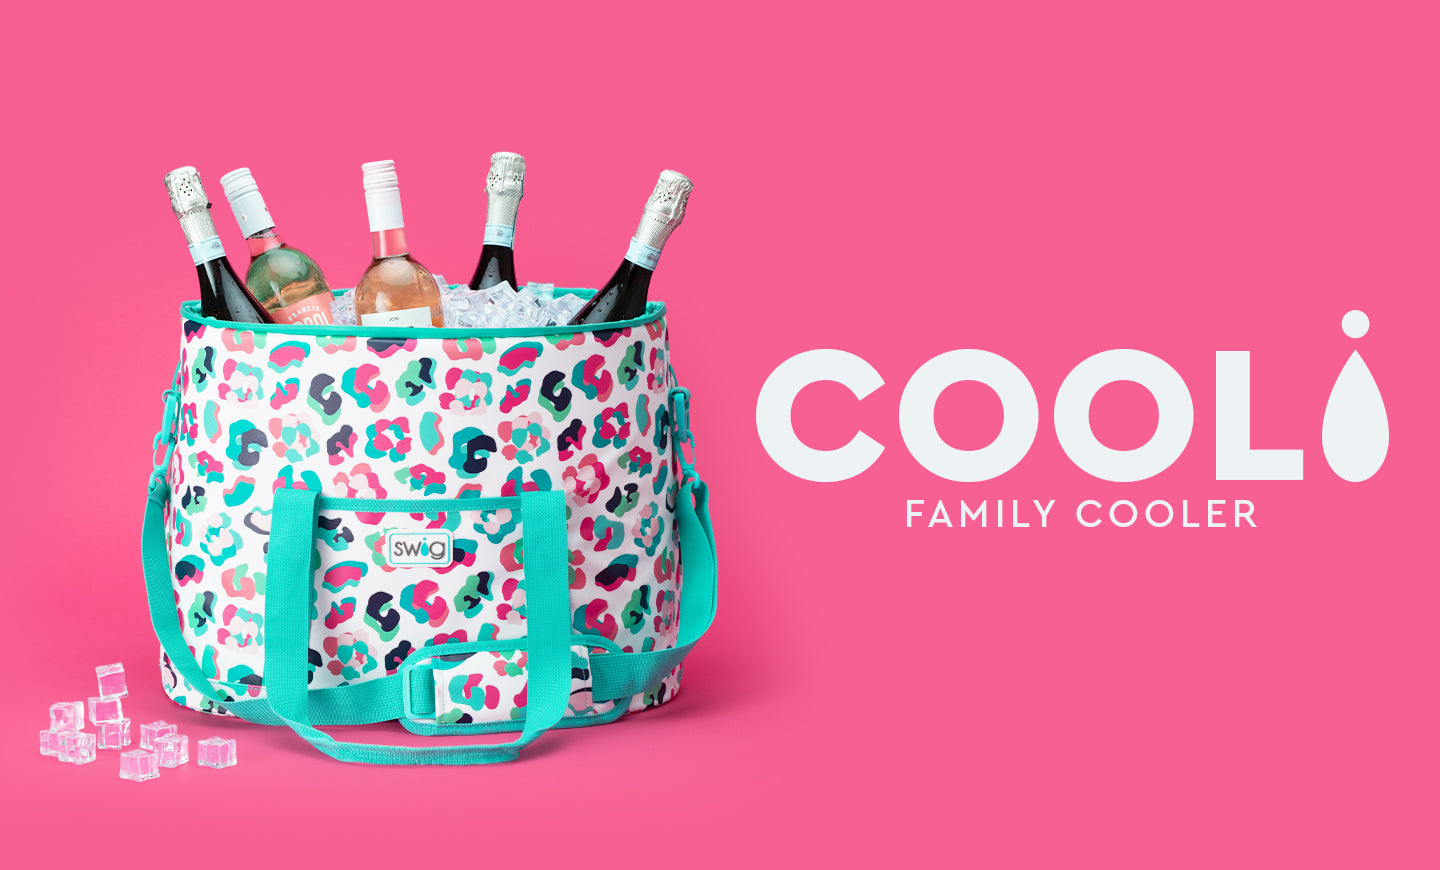 Family Coolers